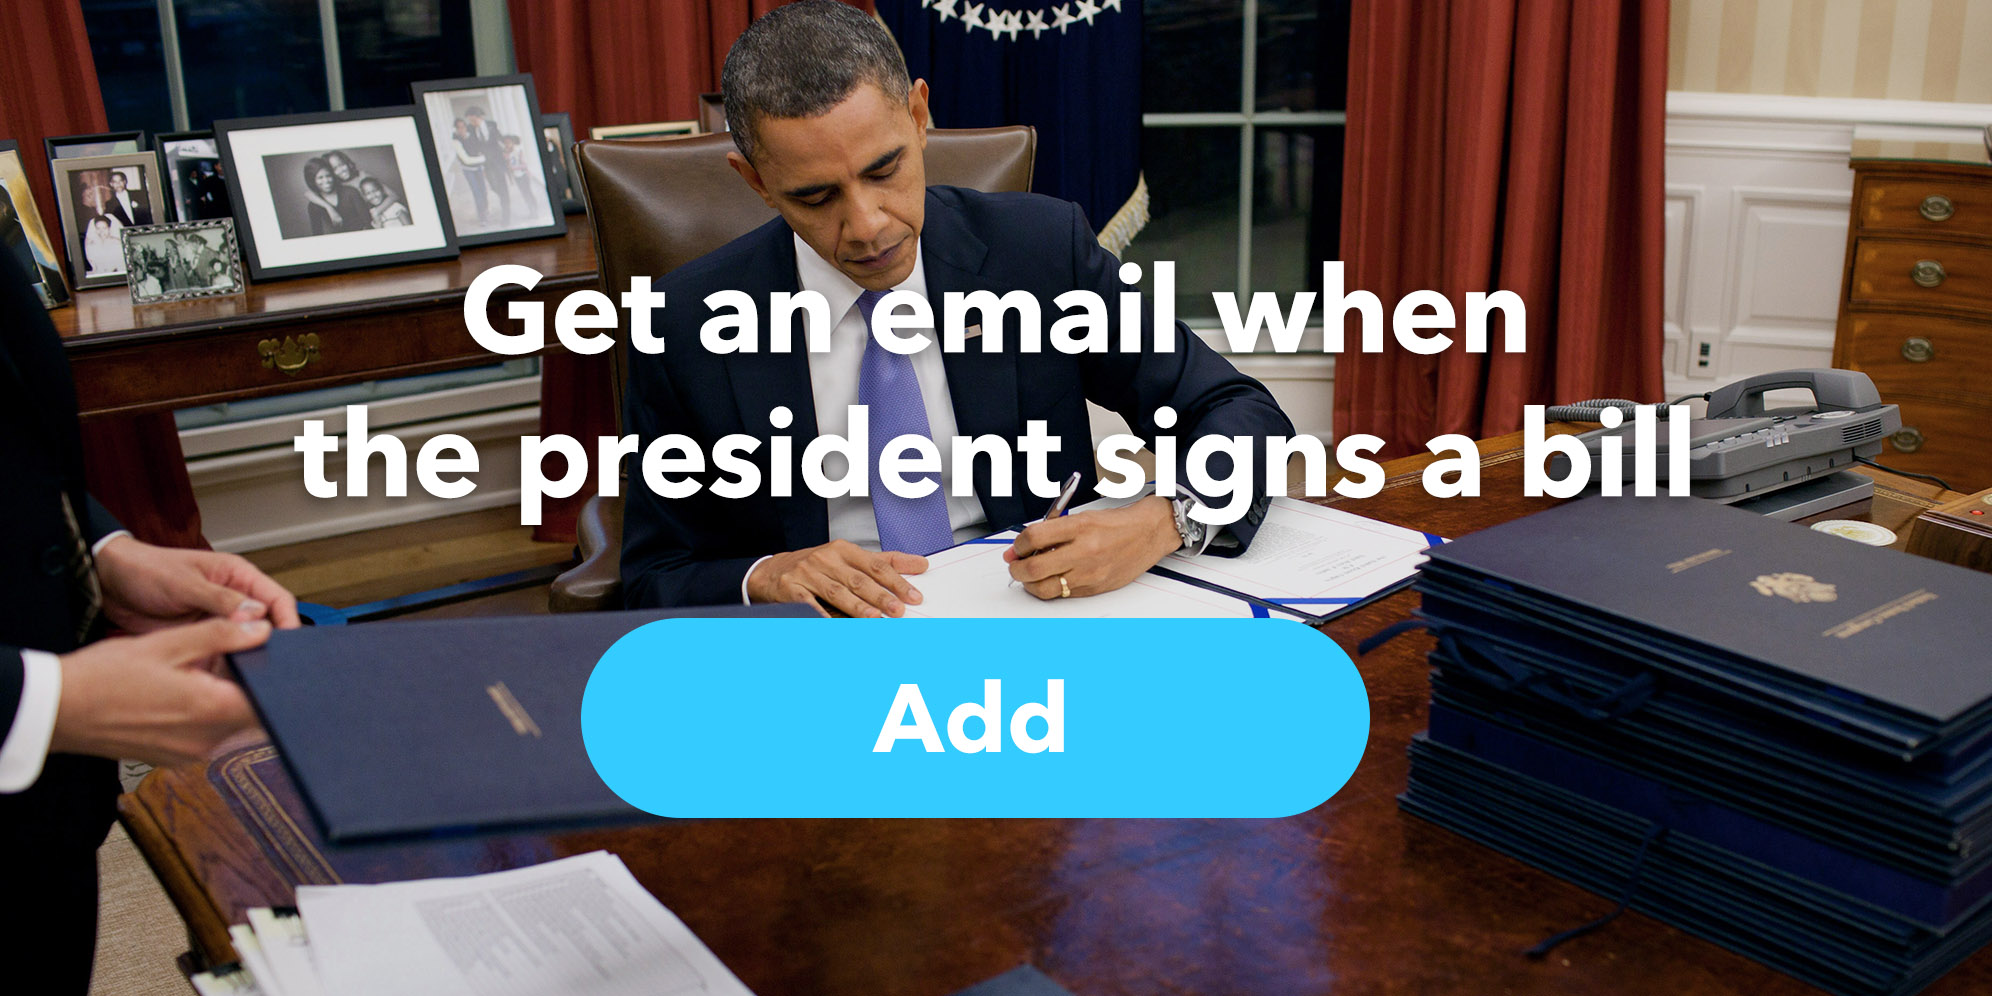 Get an email when the president signs a bill